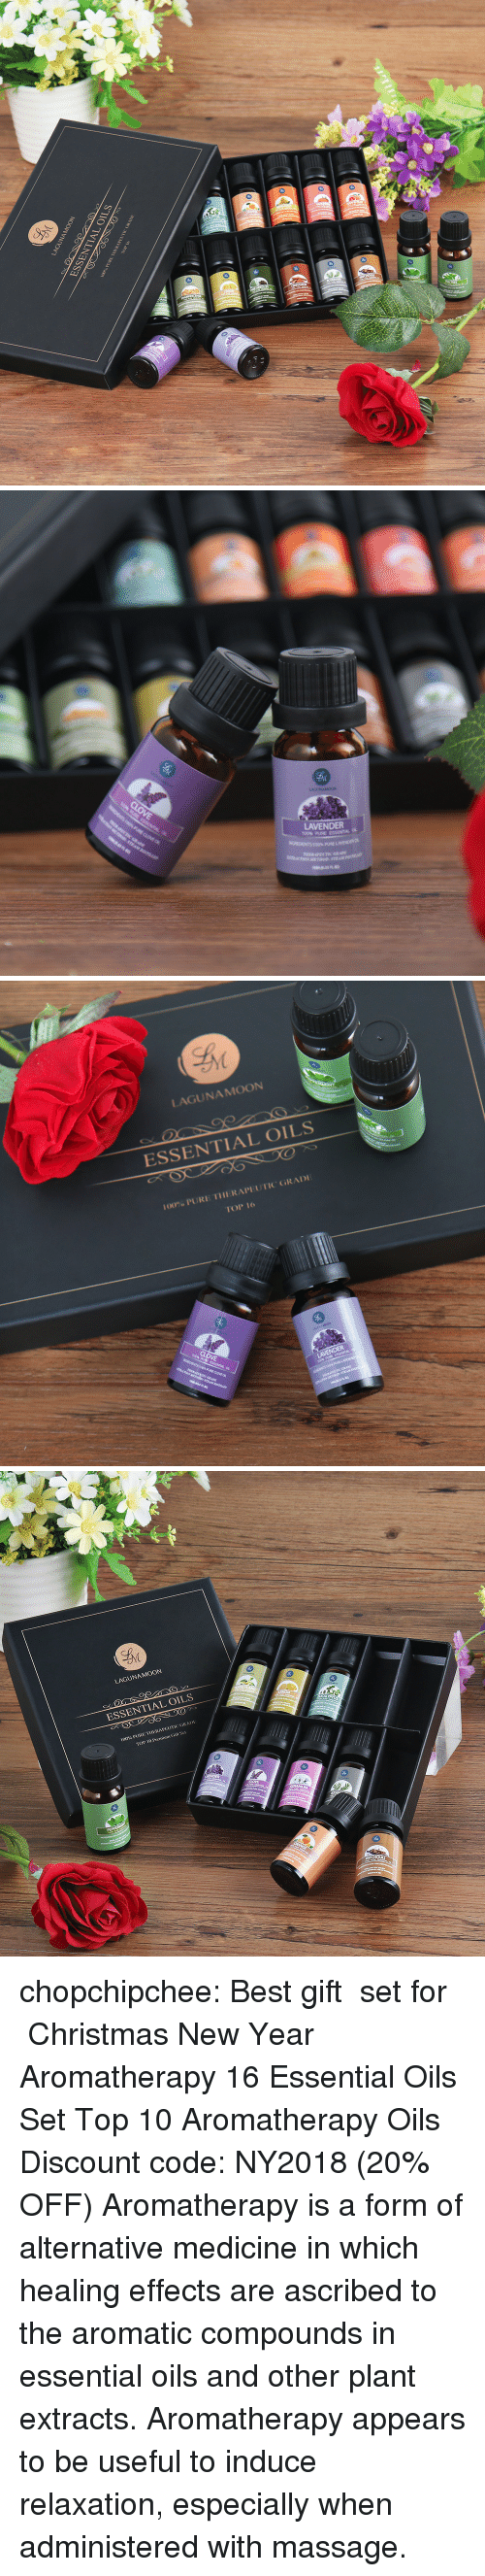 "Anaconda, Christmas, and Massage: LAGUNAMOON  ESSENTIAL OILS  100% PURE 1111:RAPEUT O""GRADI:  101, 16  0   LAVENDER  PURE LAVENDER O  TERAPUTIC GRADE   LAGUNAMOON  ESSENTIAL OILS  100% PURI. IHERAPI"" U l'IC GRADI  TOP 16  LAVENDER   LAGUNAMOON  ESSENTIAL OILS  TOP 10.Premum in Set  CLOVE chopchipchee: Best gift  set for  Christmas  New Year Aromatherapy 16 Essential Oils Set Top 10 Aromatherapy Oils Discount code: NY2018 (20% OFF)  Aromatherapy is a form of alternative medicine in which healing effects are ascribed to the aromatic compounds in essential oils and other plant extracts. Aromatherapy appears to be useful to induce relaxation, especially when administered with massage."